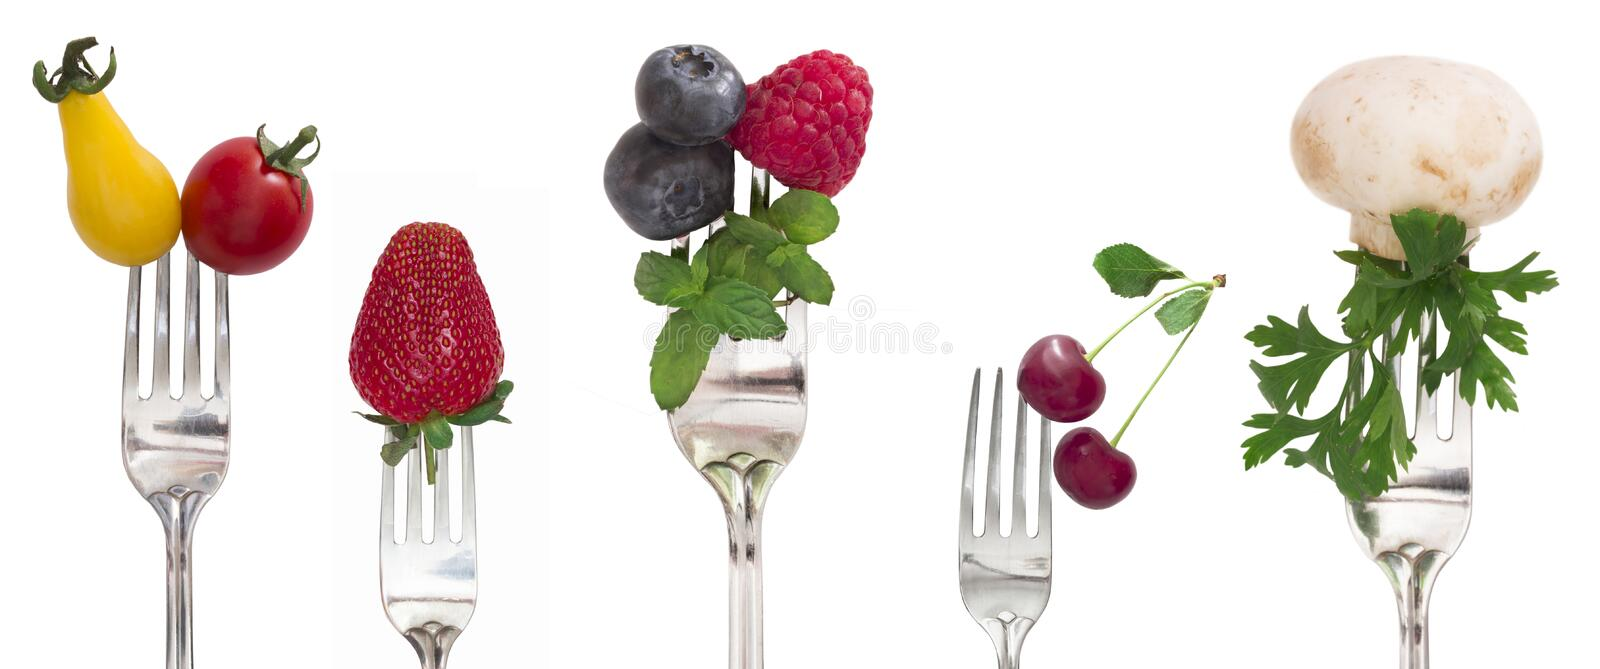 Fruits and vegetables on the forks stock image